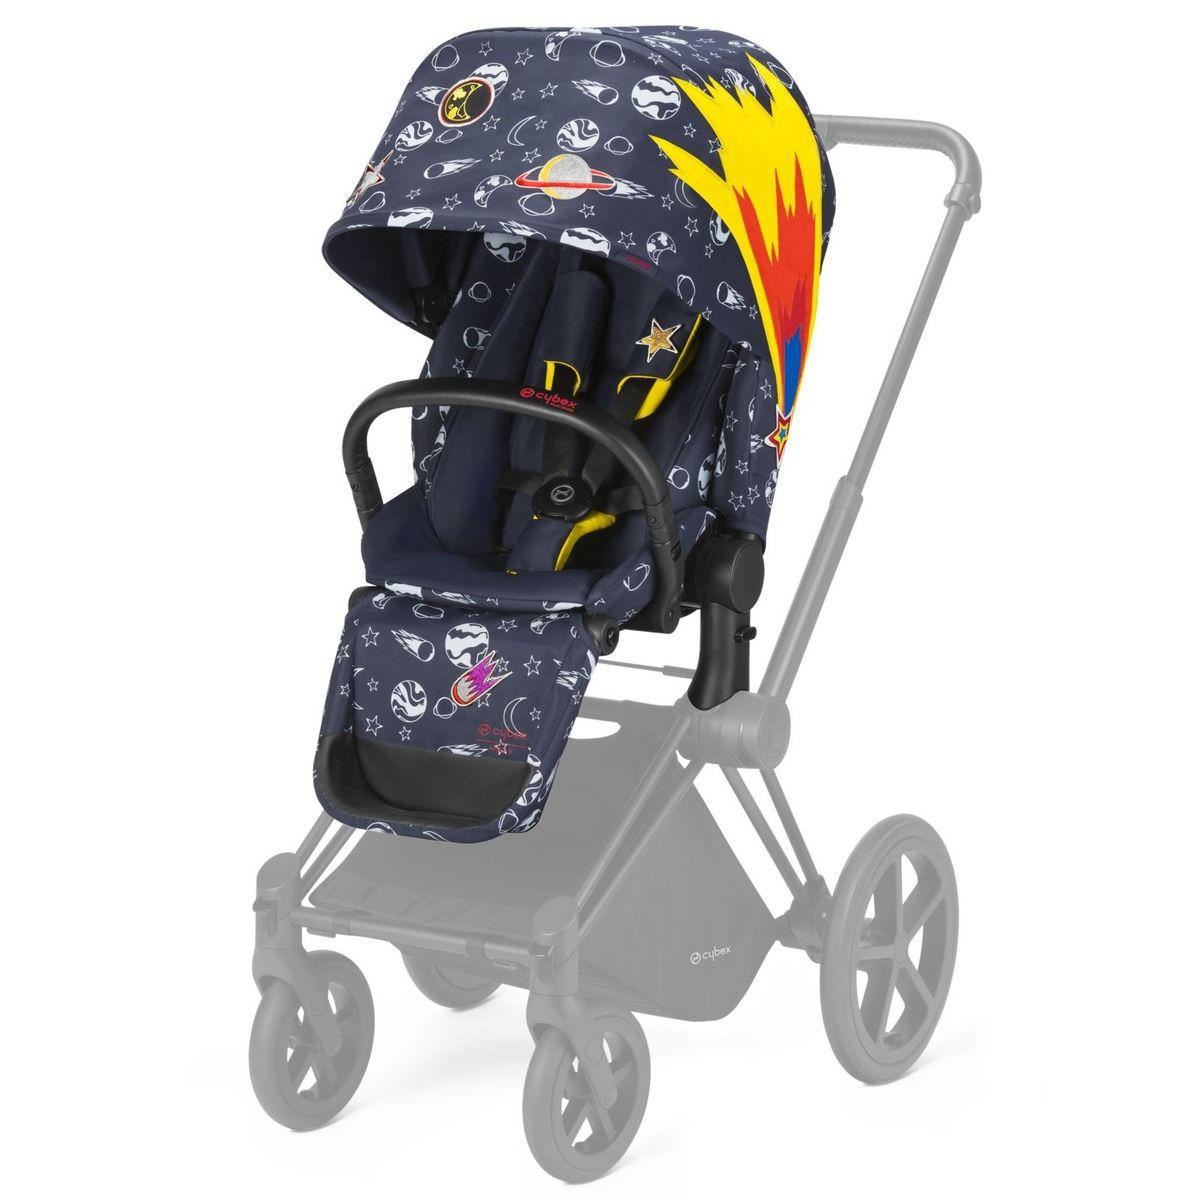 Assise-habillage poussette PRIAM Cybex space rocket-navy blue